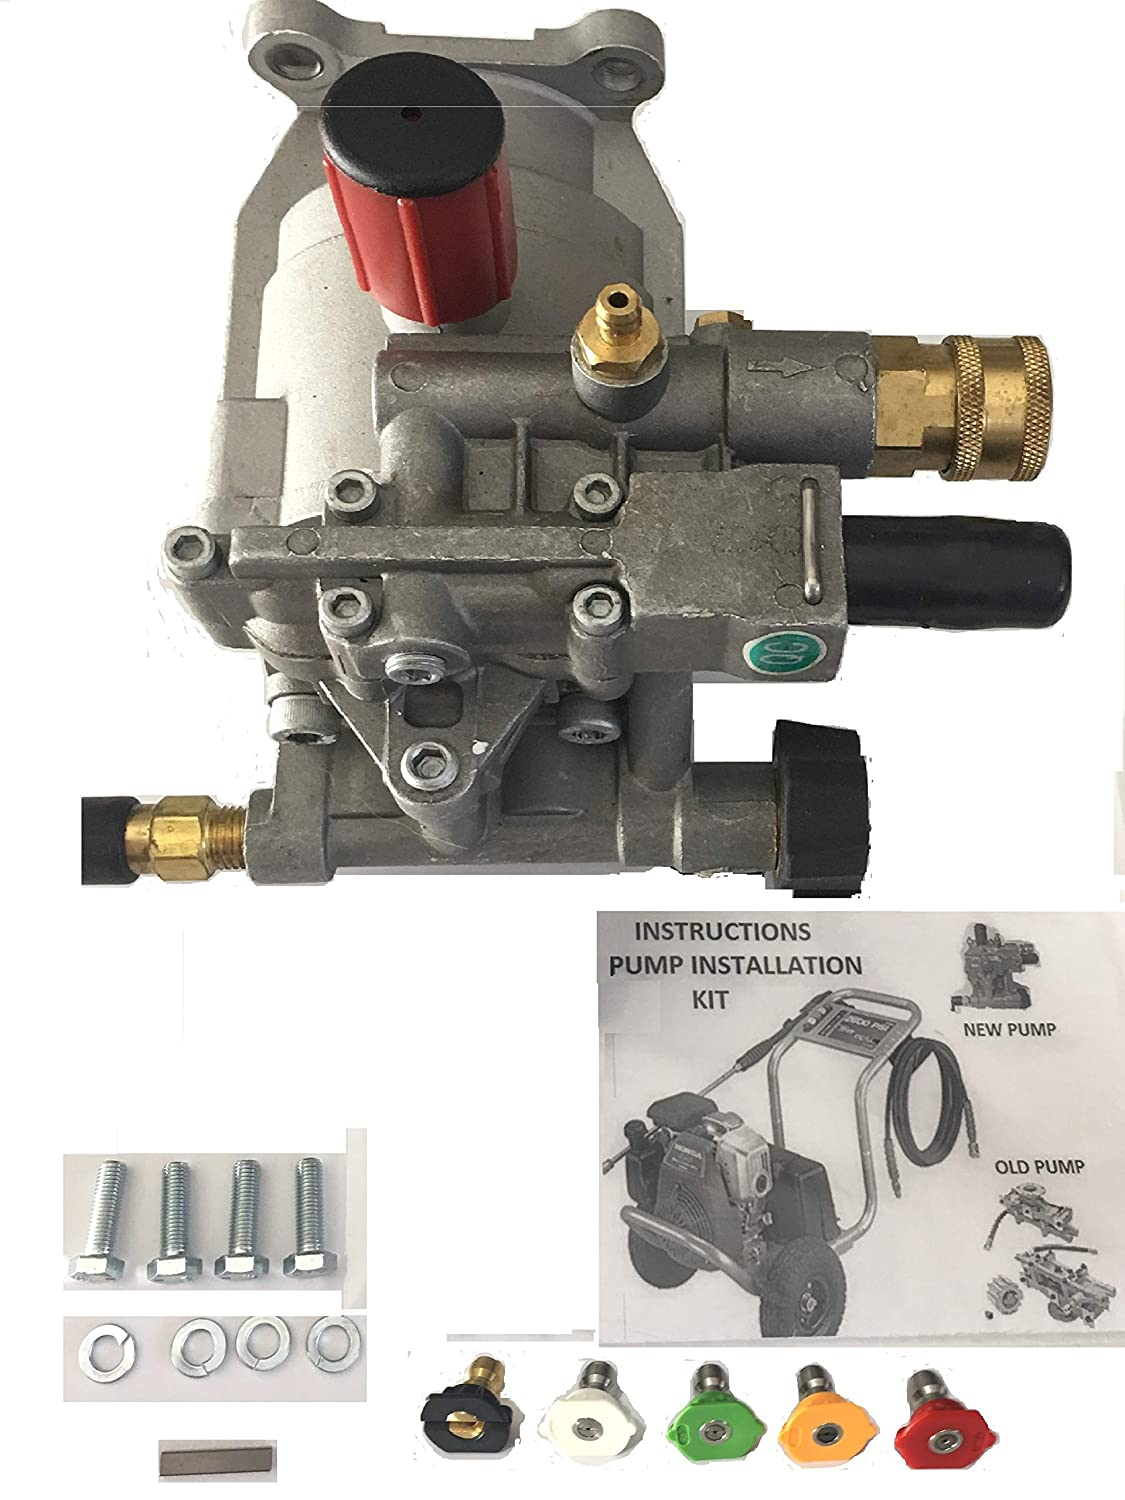 Amazon.com : pumps-n-more priority shipping New PRESSURE WASHER PUMP KIT  Replaces A14292 Fits Honda Excell FULL ONE YEAR WARRANTY - Includes thermal  relief ...